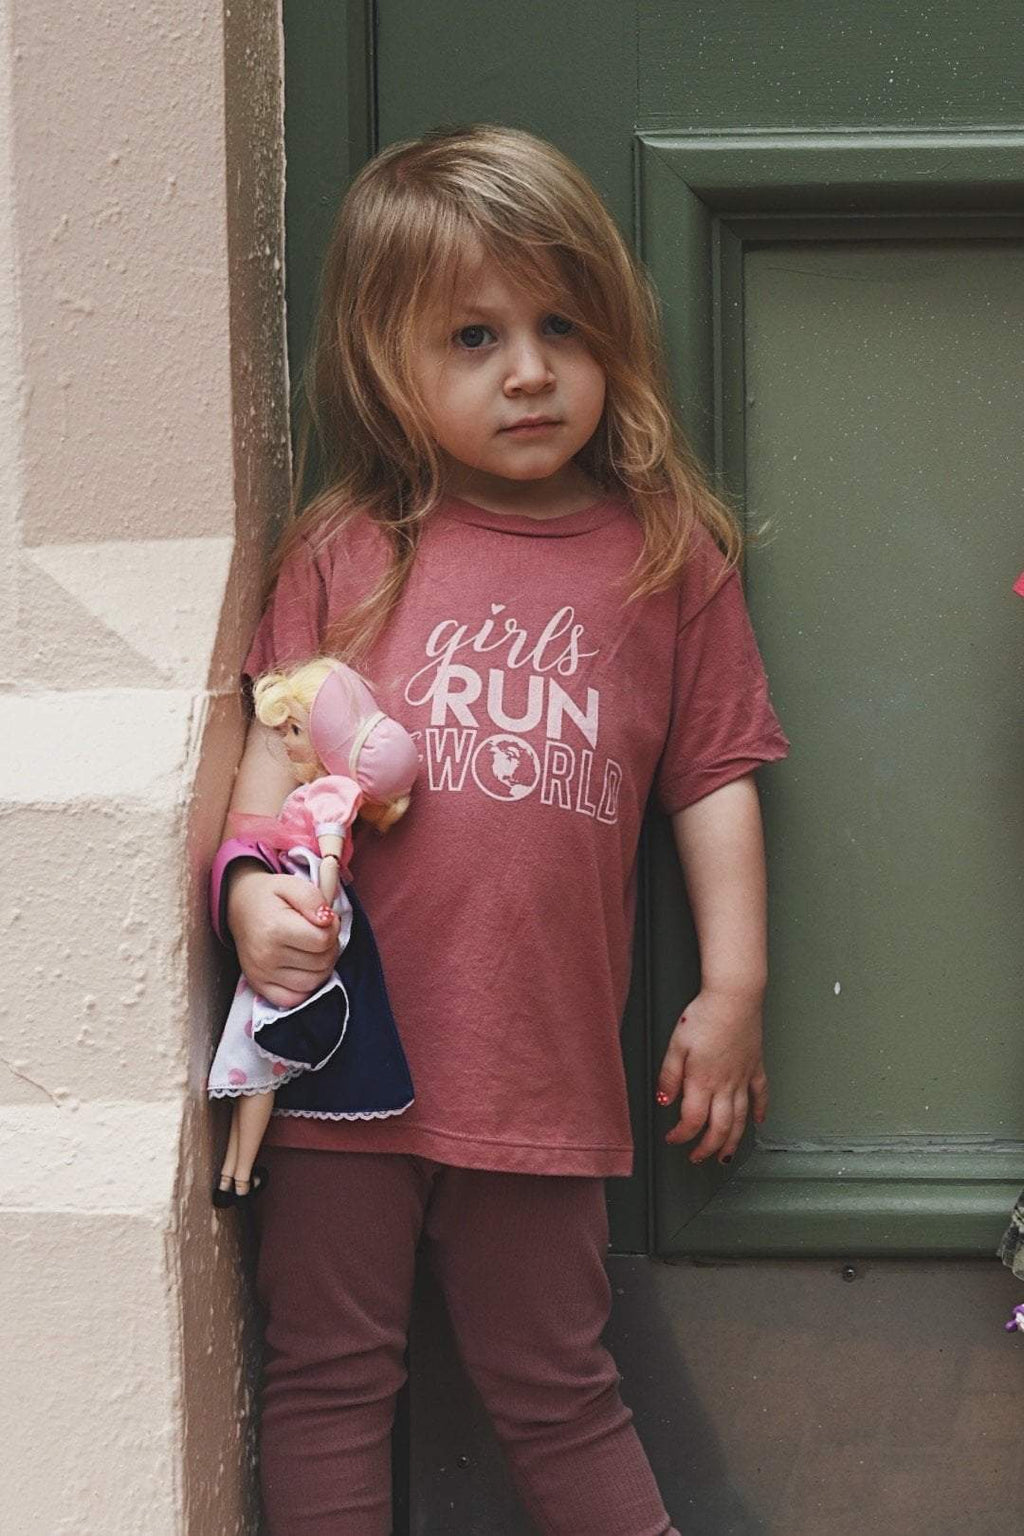 Girls Run The World Toddler T-Shirt - Sarah Marie Design Studio